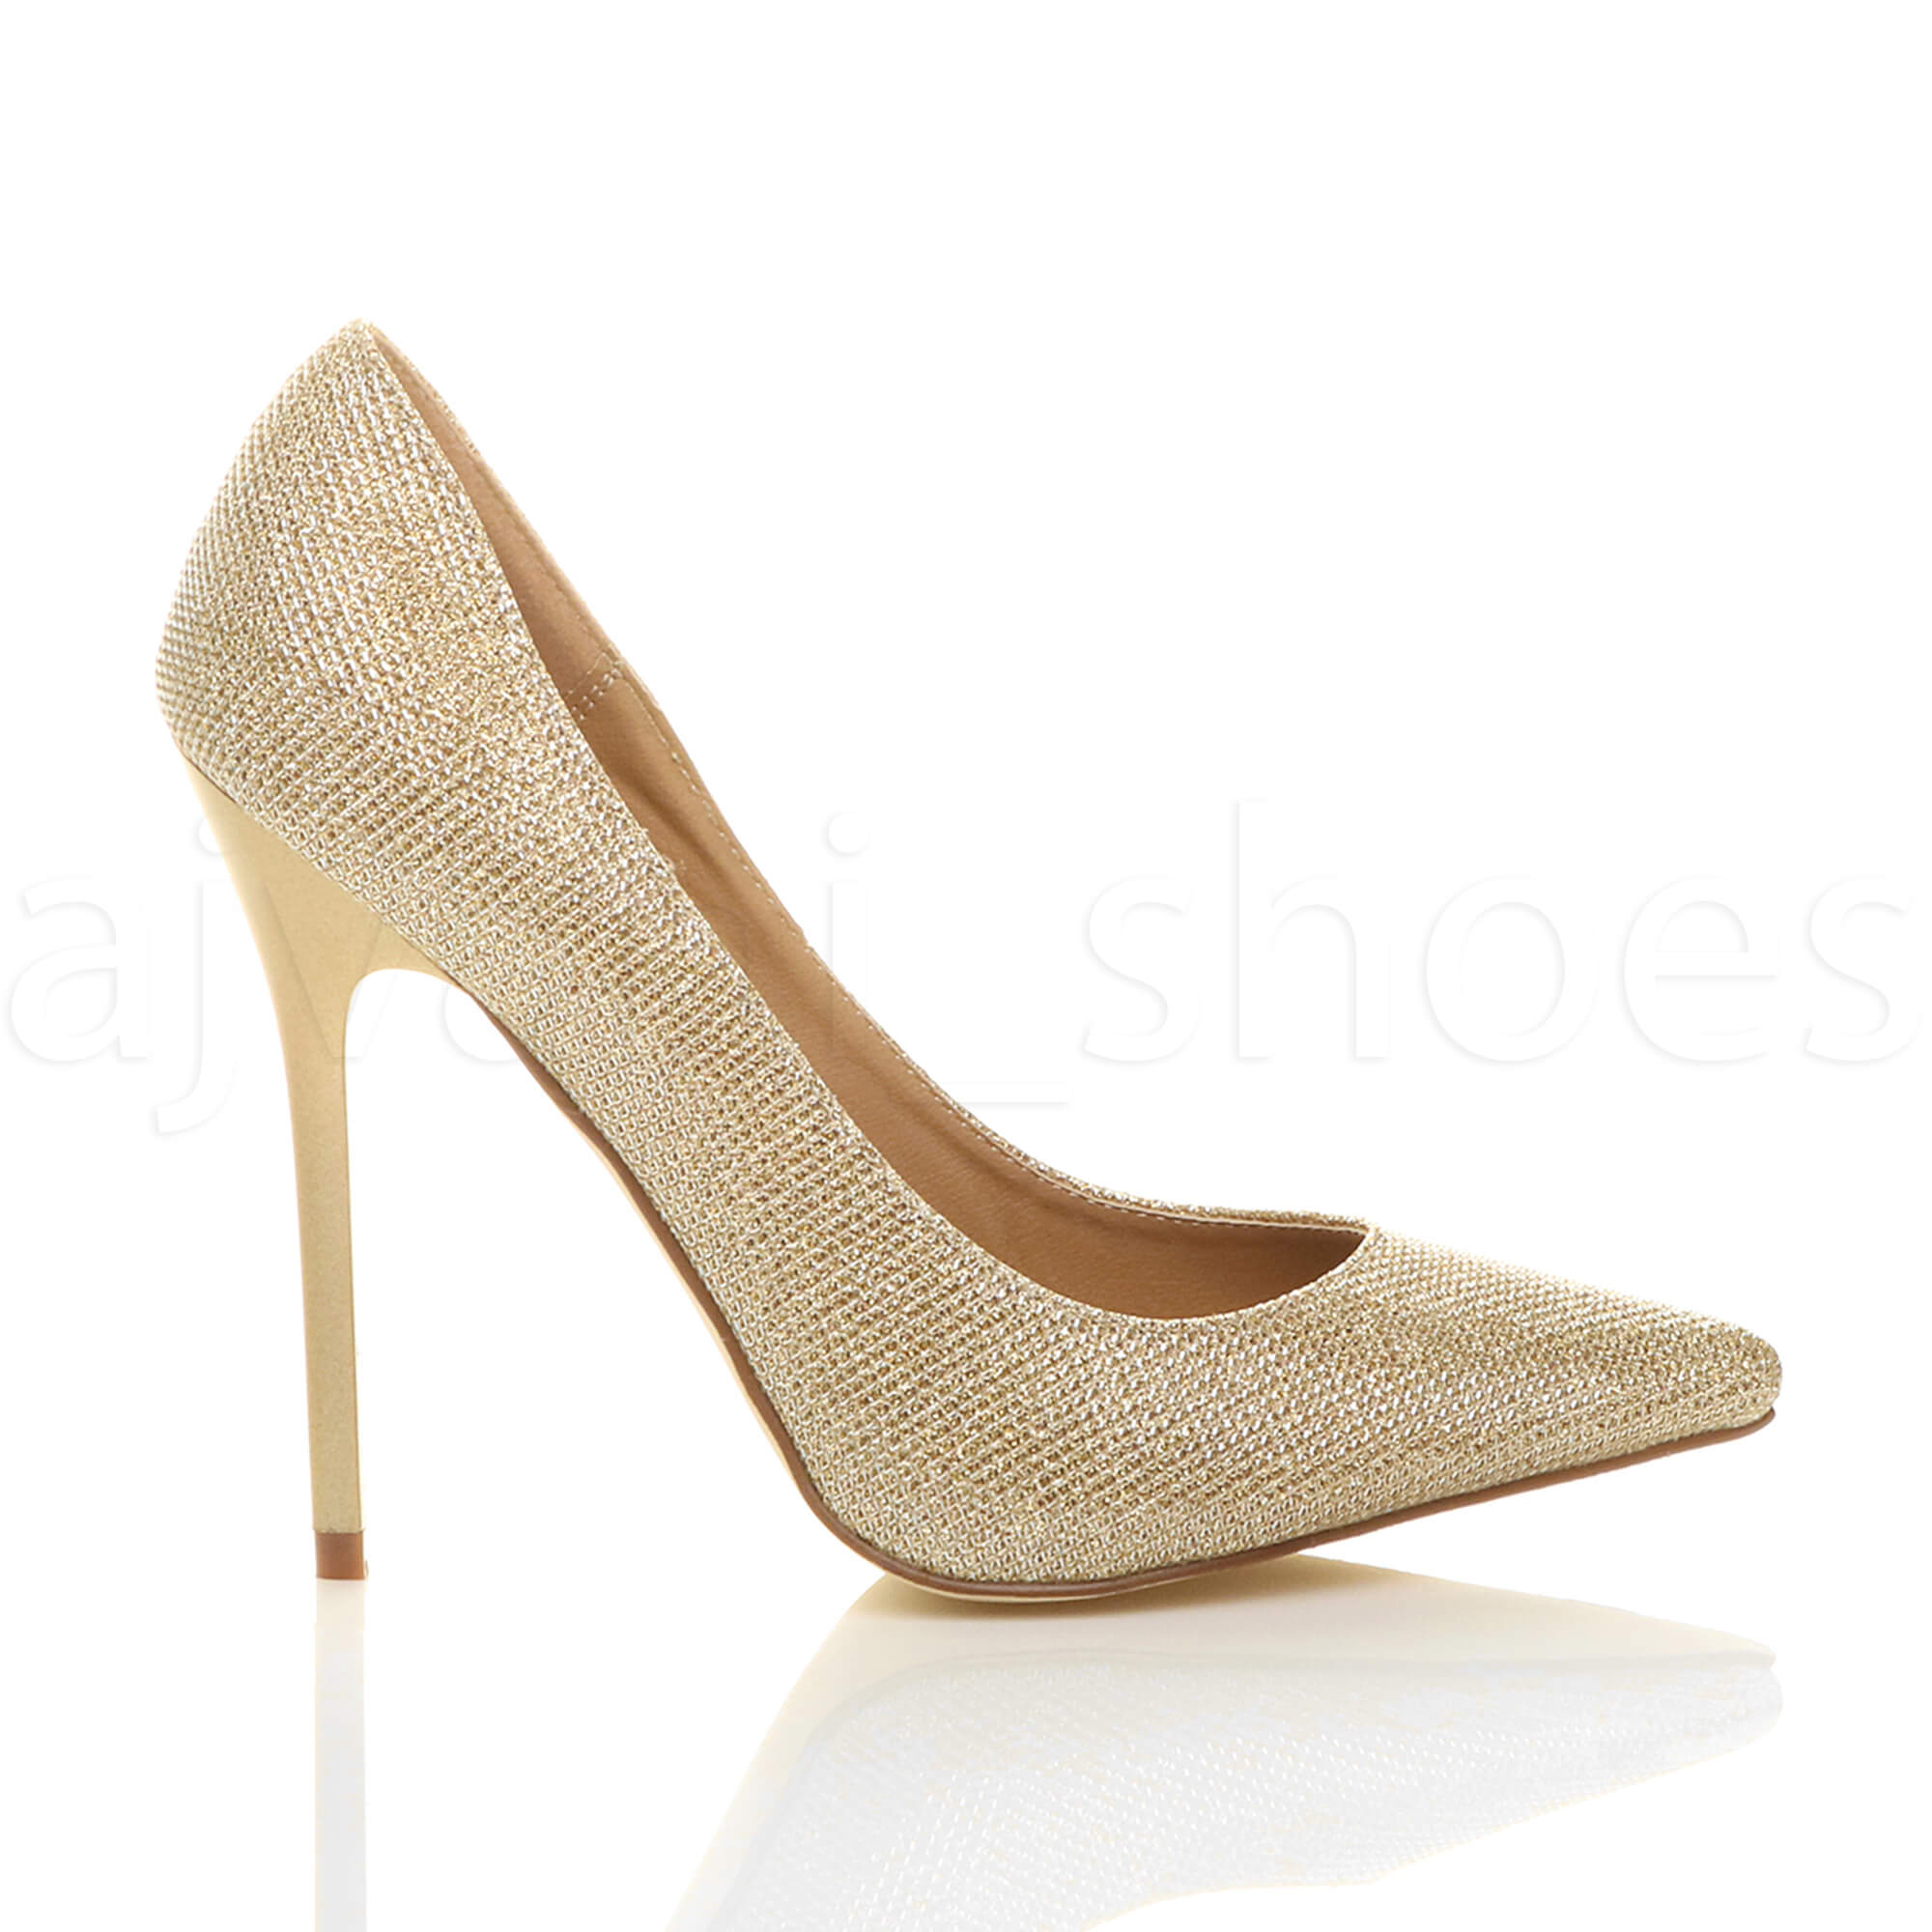 WOMENS-LADIES-HIGH-HEEL-POINTED-CONTRAST-COURT-SMART-PARTY-WORK-SHOES-PUMPS-SIZE thumbnail 73